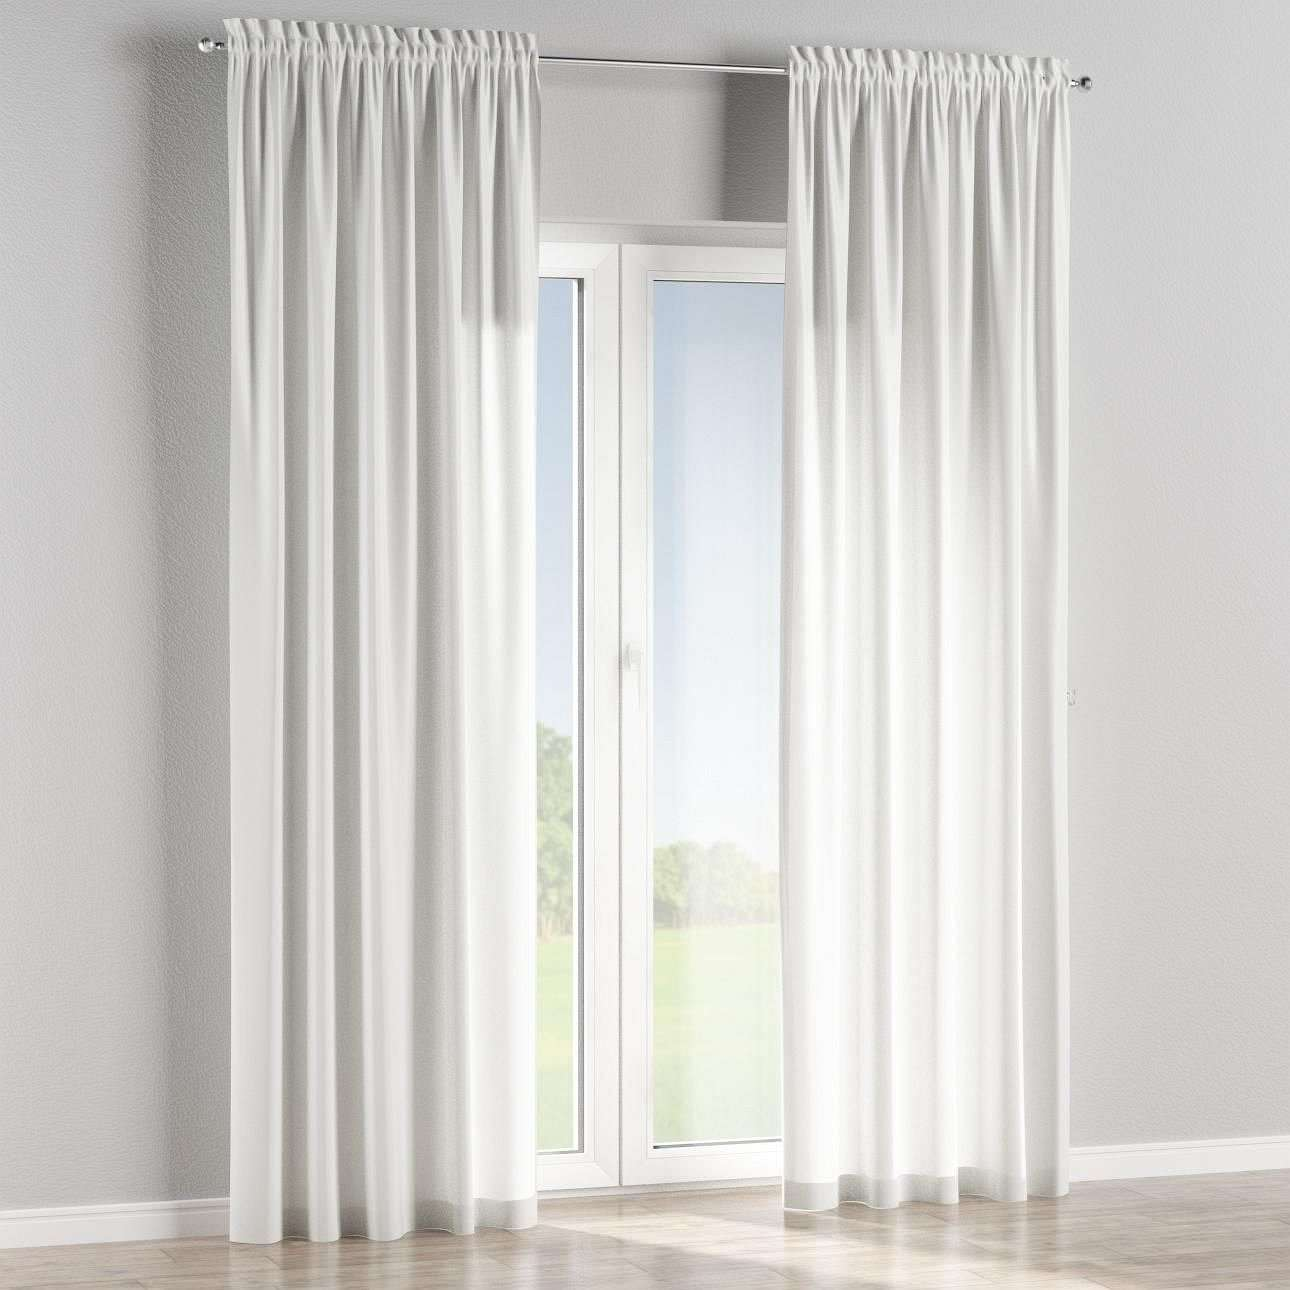 Slot and frill lined curtains in collection Flowers, fabric: 140-89